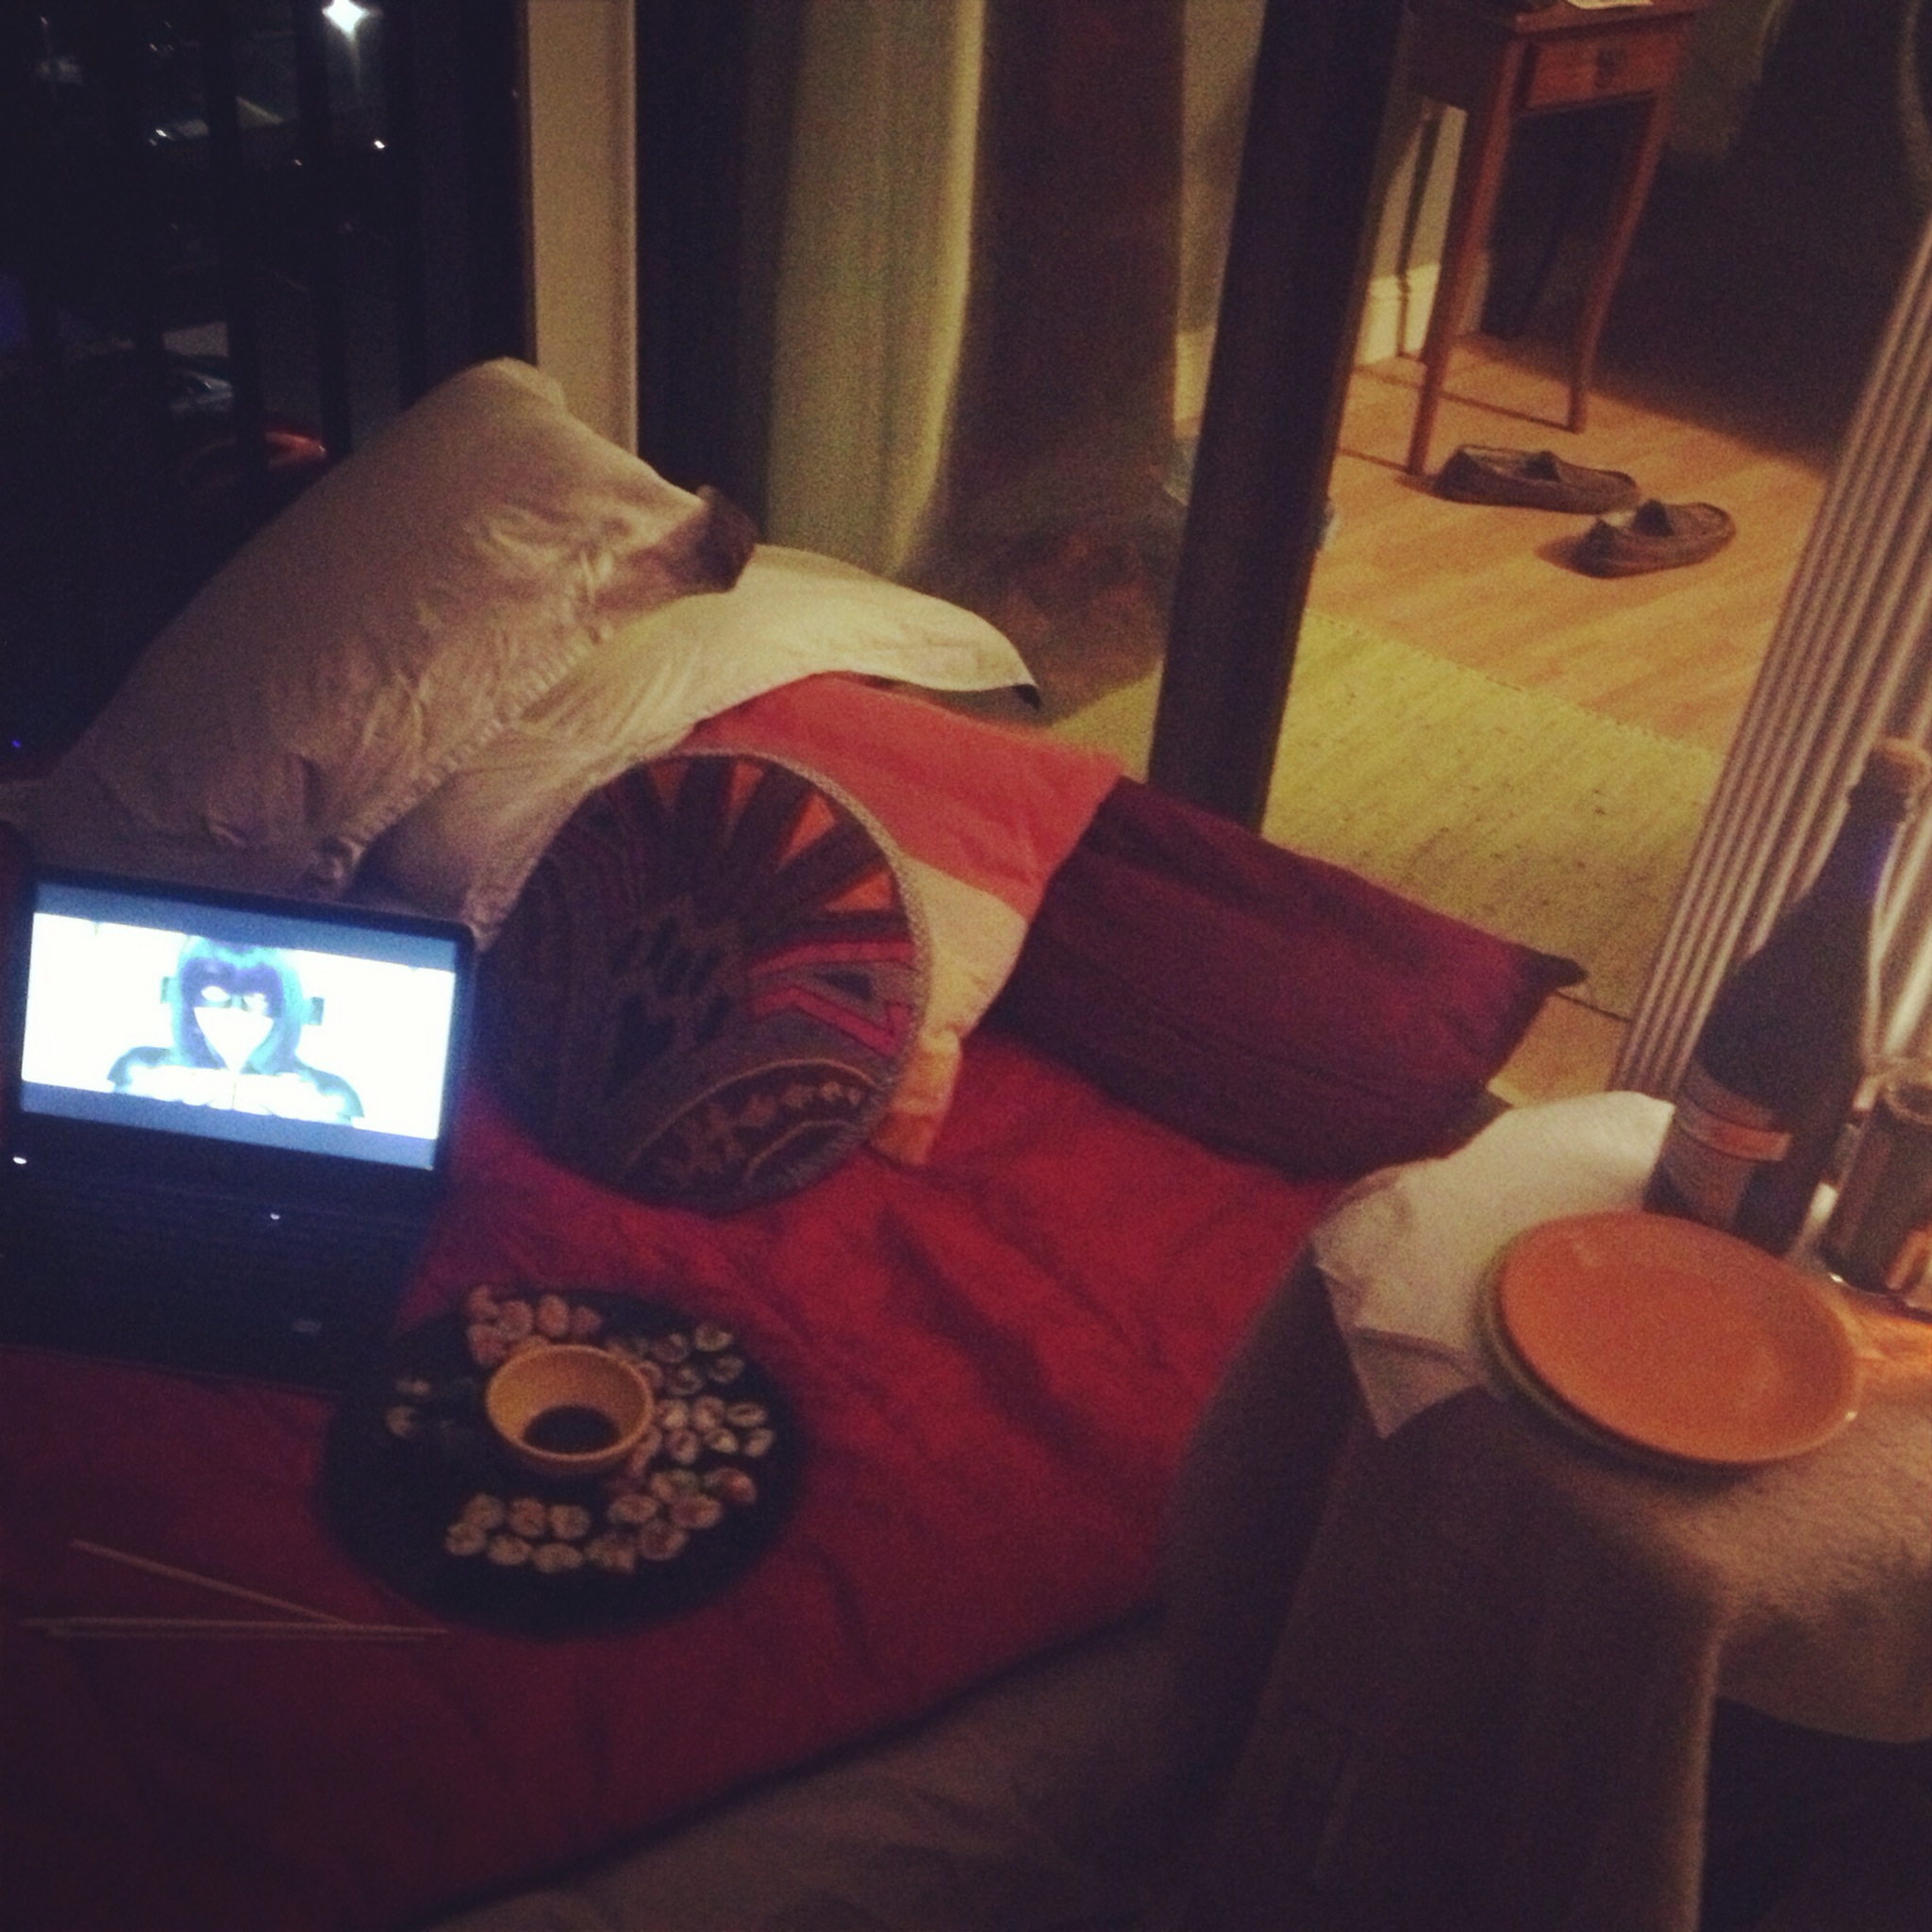 Our NYE ritual -- homemade sushi, Prosecco, an air mattress, all the pillows we have. the balcony + a movie on the laptop.